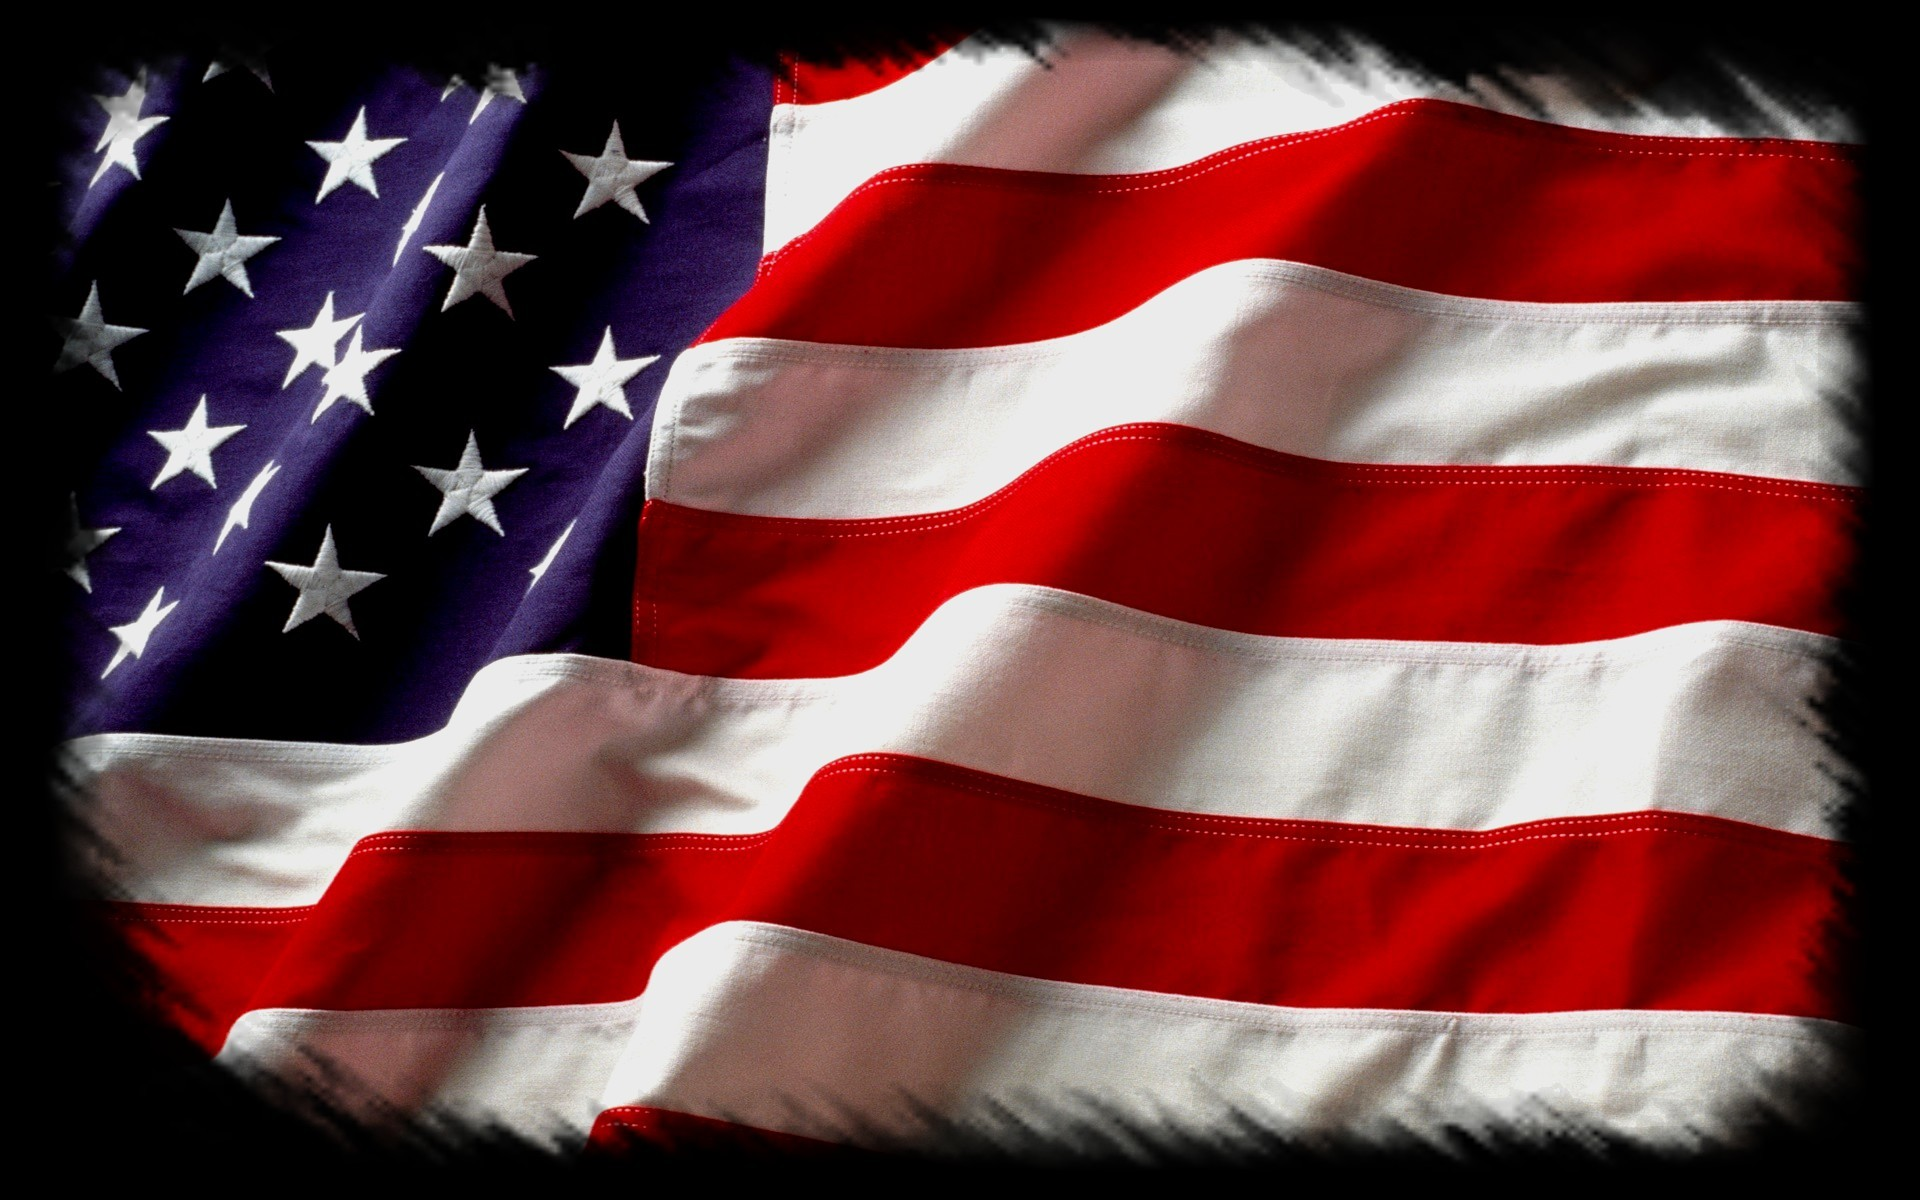 2475x1650 Hd American Flag With Eagle Background Download 1980x1560 Usa Wallpaper